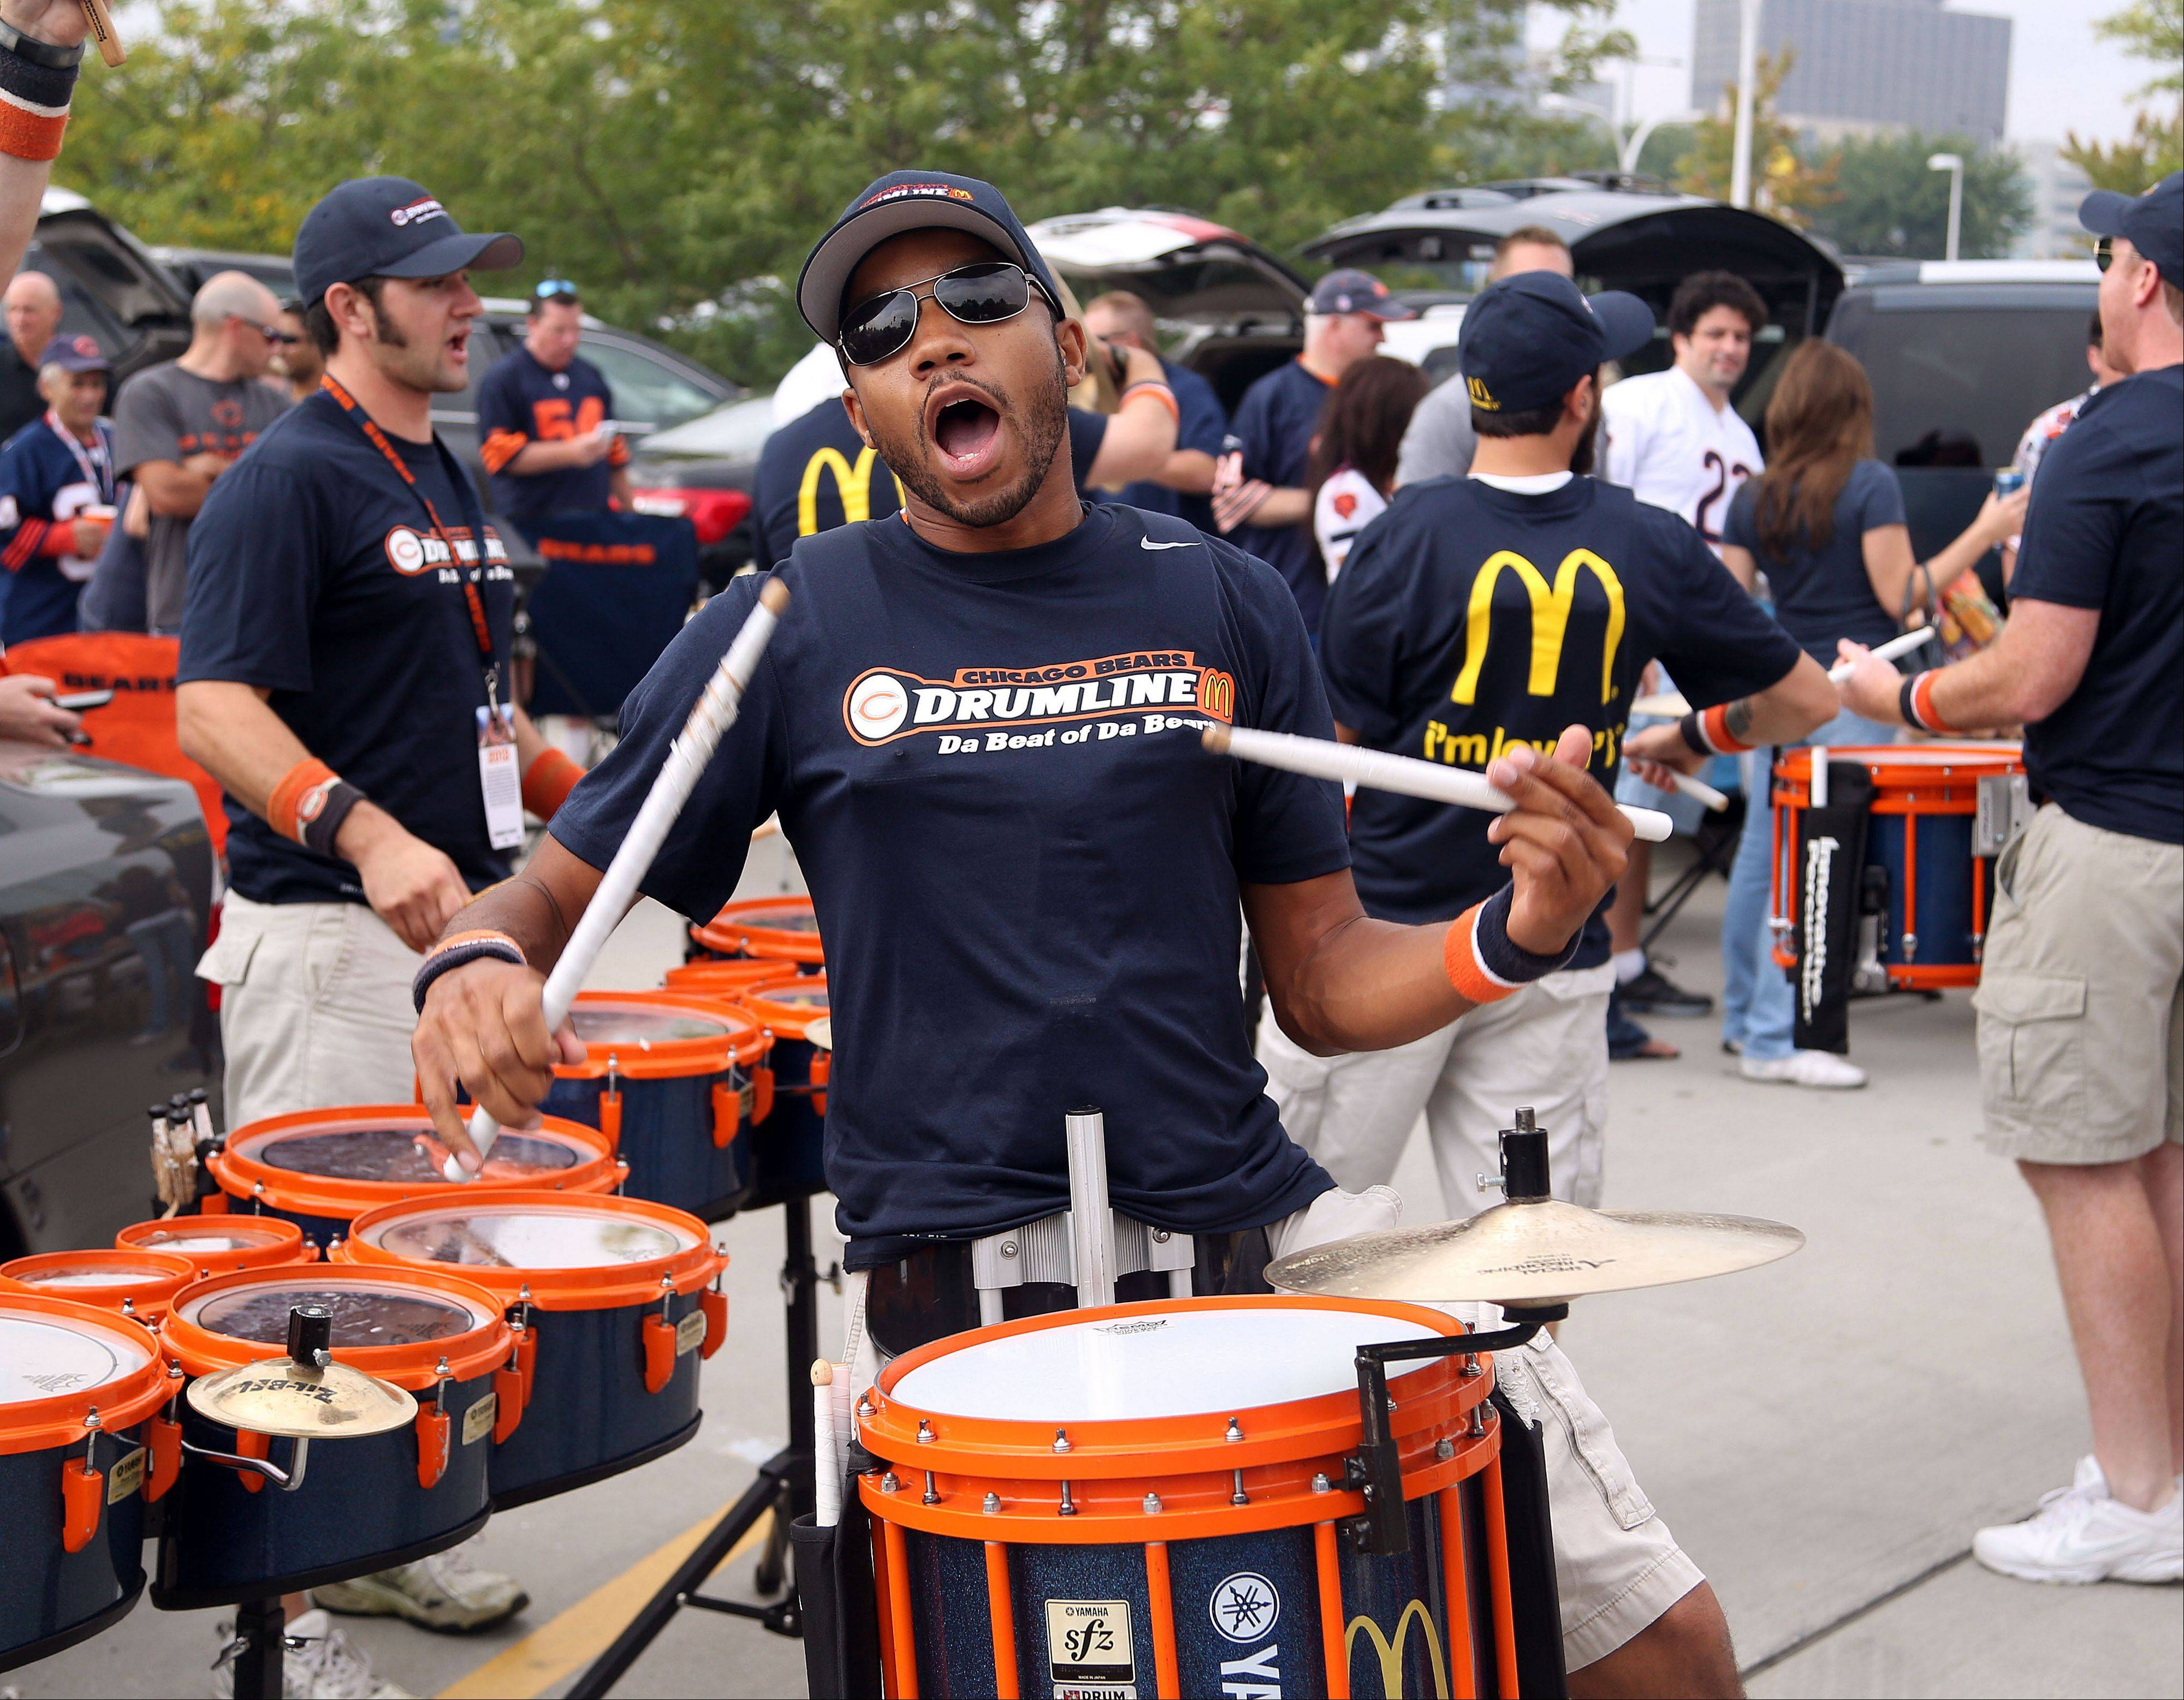 Members of the Chicago Bears Drumline make some noise for tailgaters on Sunday at Soldier Field, and the Bears made some noise with their season-opening win under rookie head coach Marc Trestman.